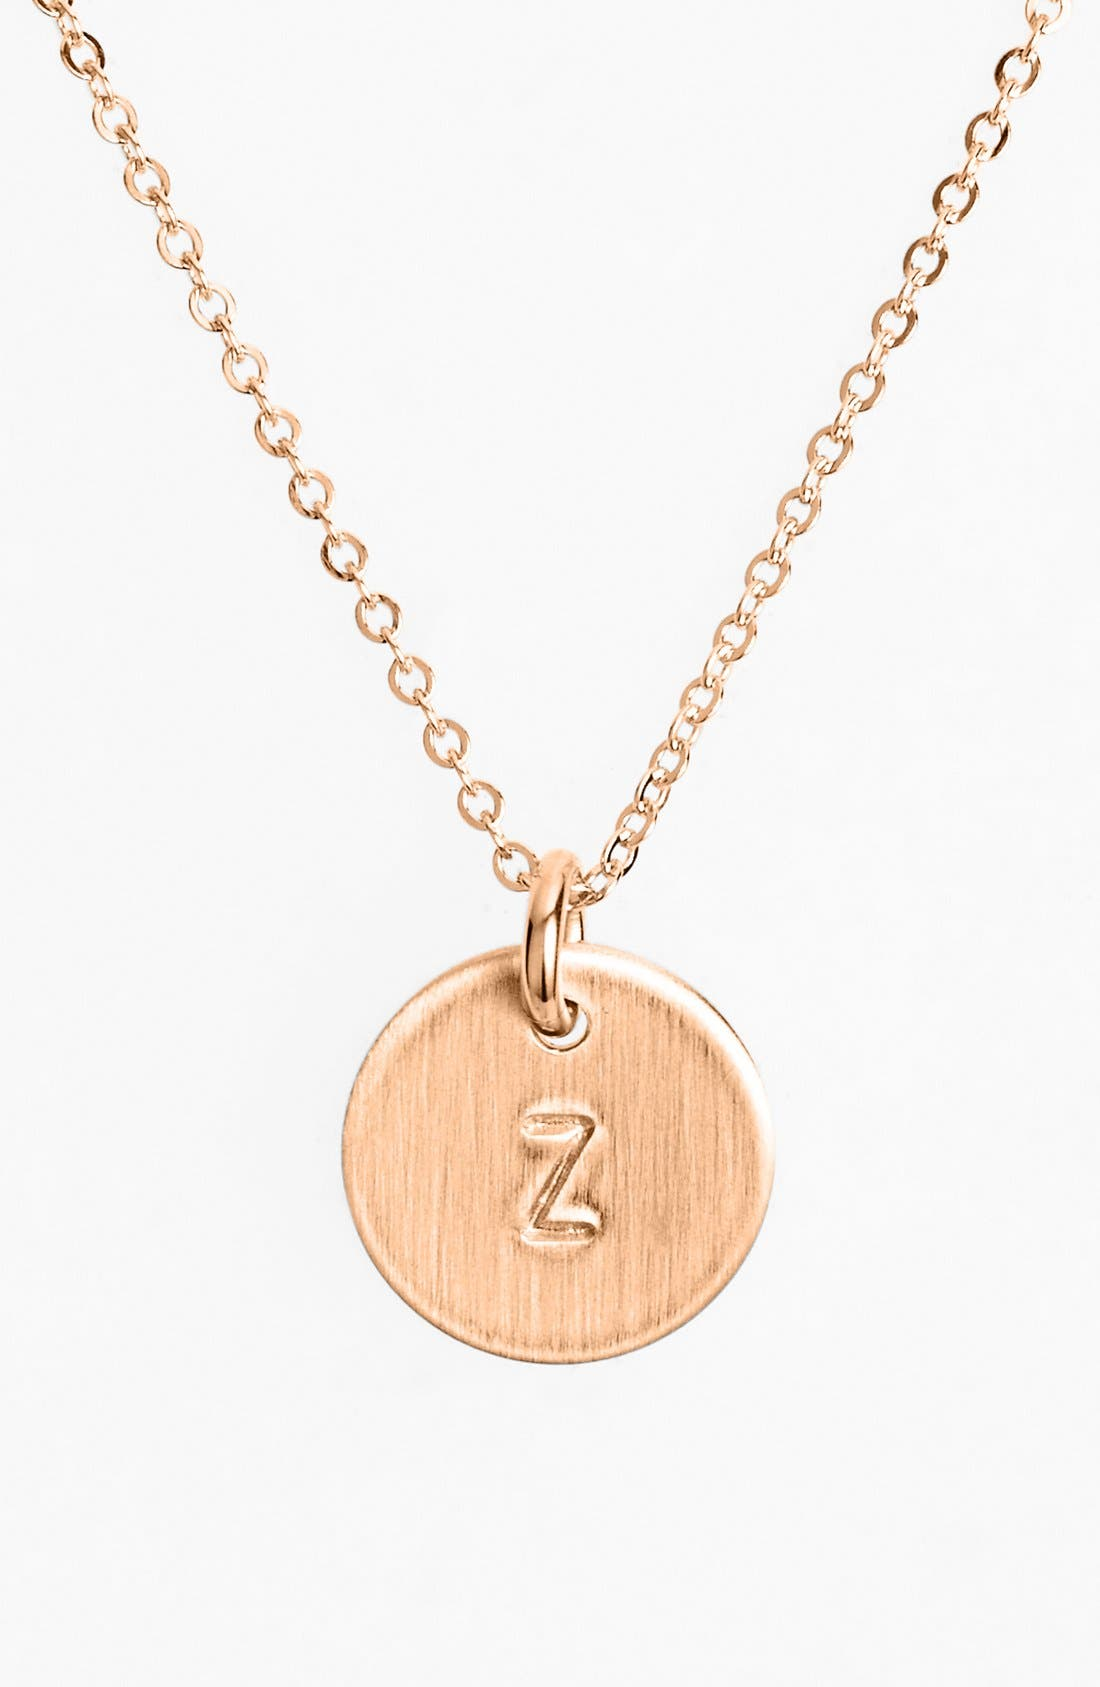 14k-Rose Gold Fill Initial Mini Disc Necklace,                         Main,                         color, 14K Rose Gold Fill Z